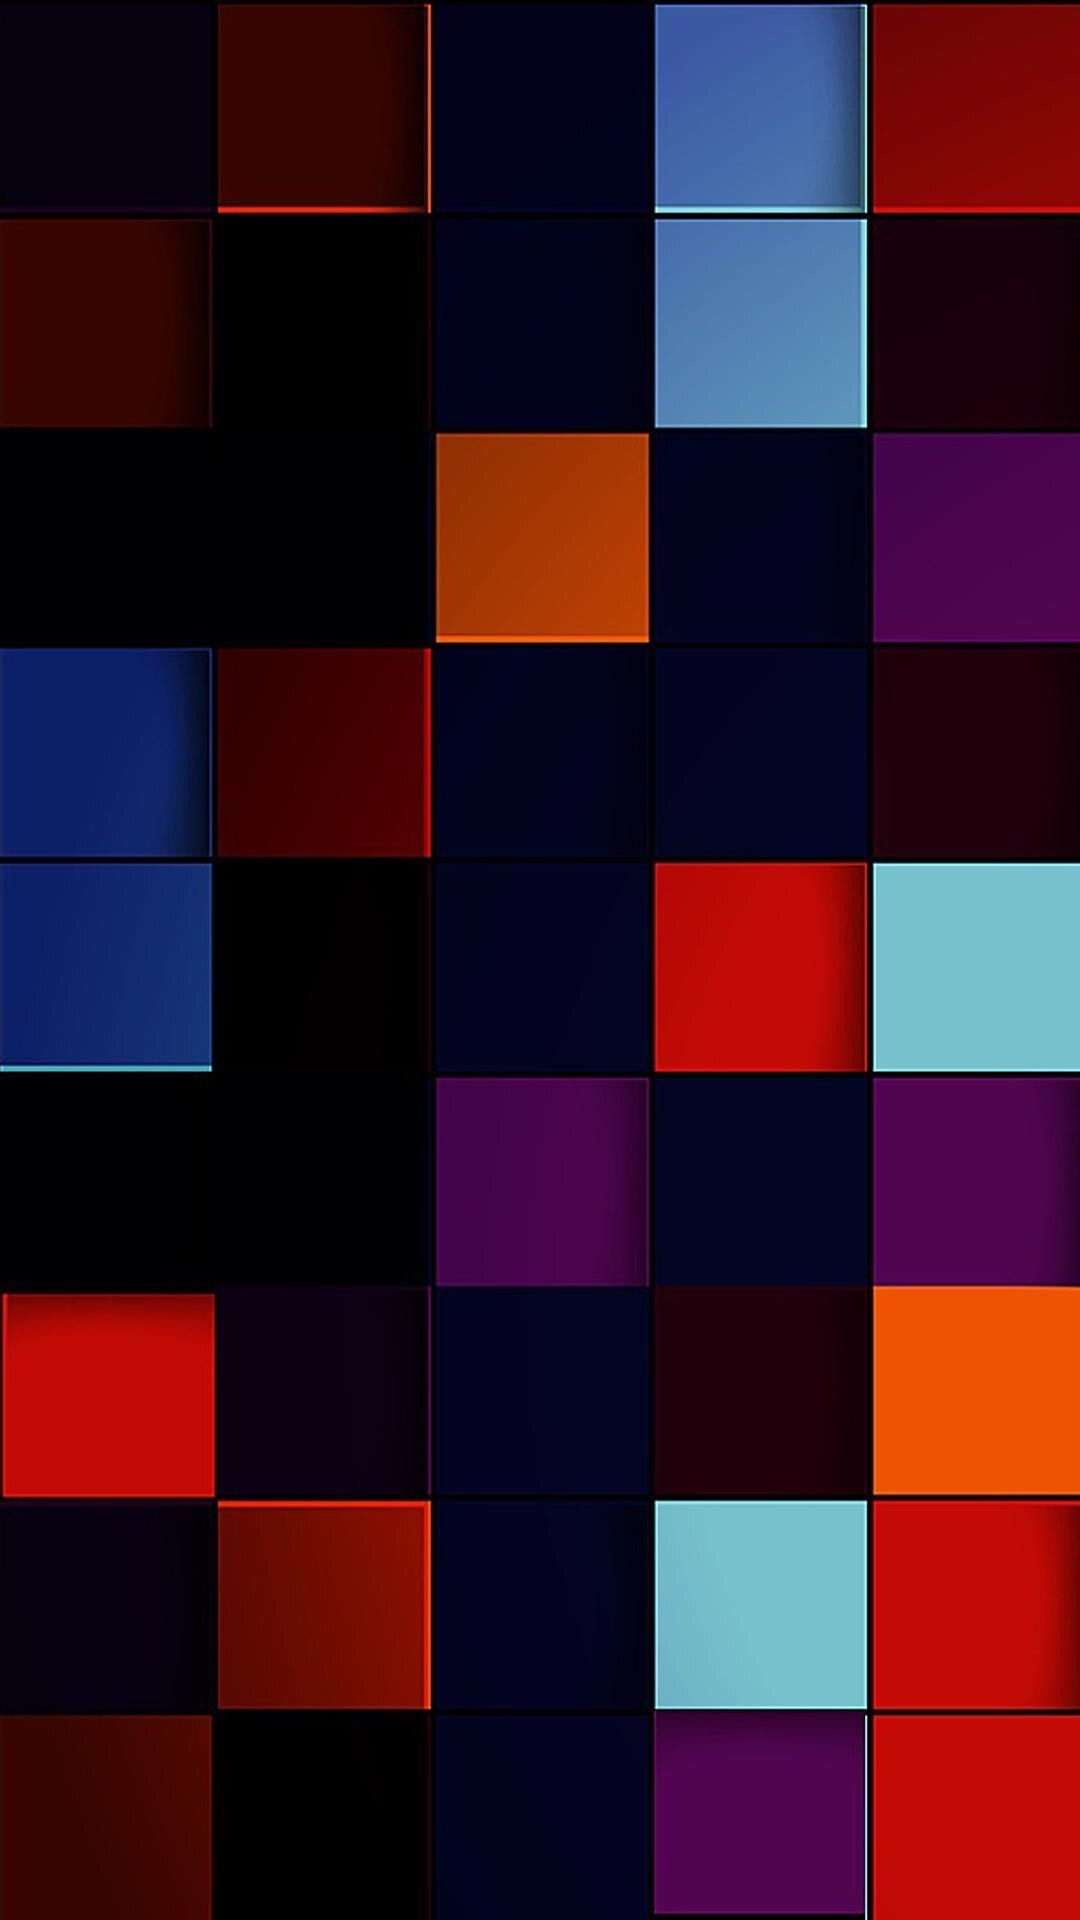 Download Animated Wallpapers For Mobile Phone Abstract Geometric Wallpapers 75 Images